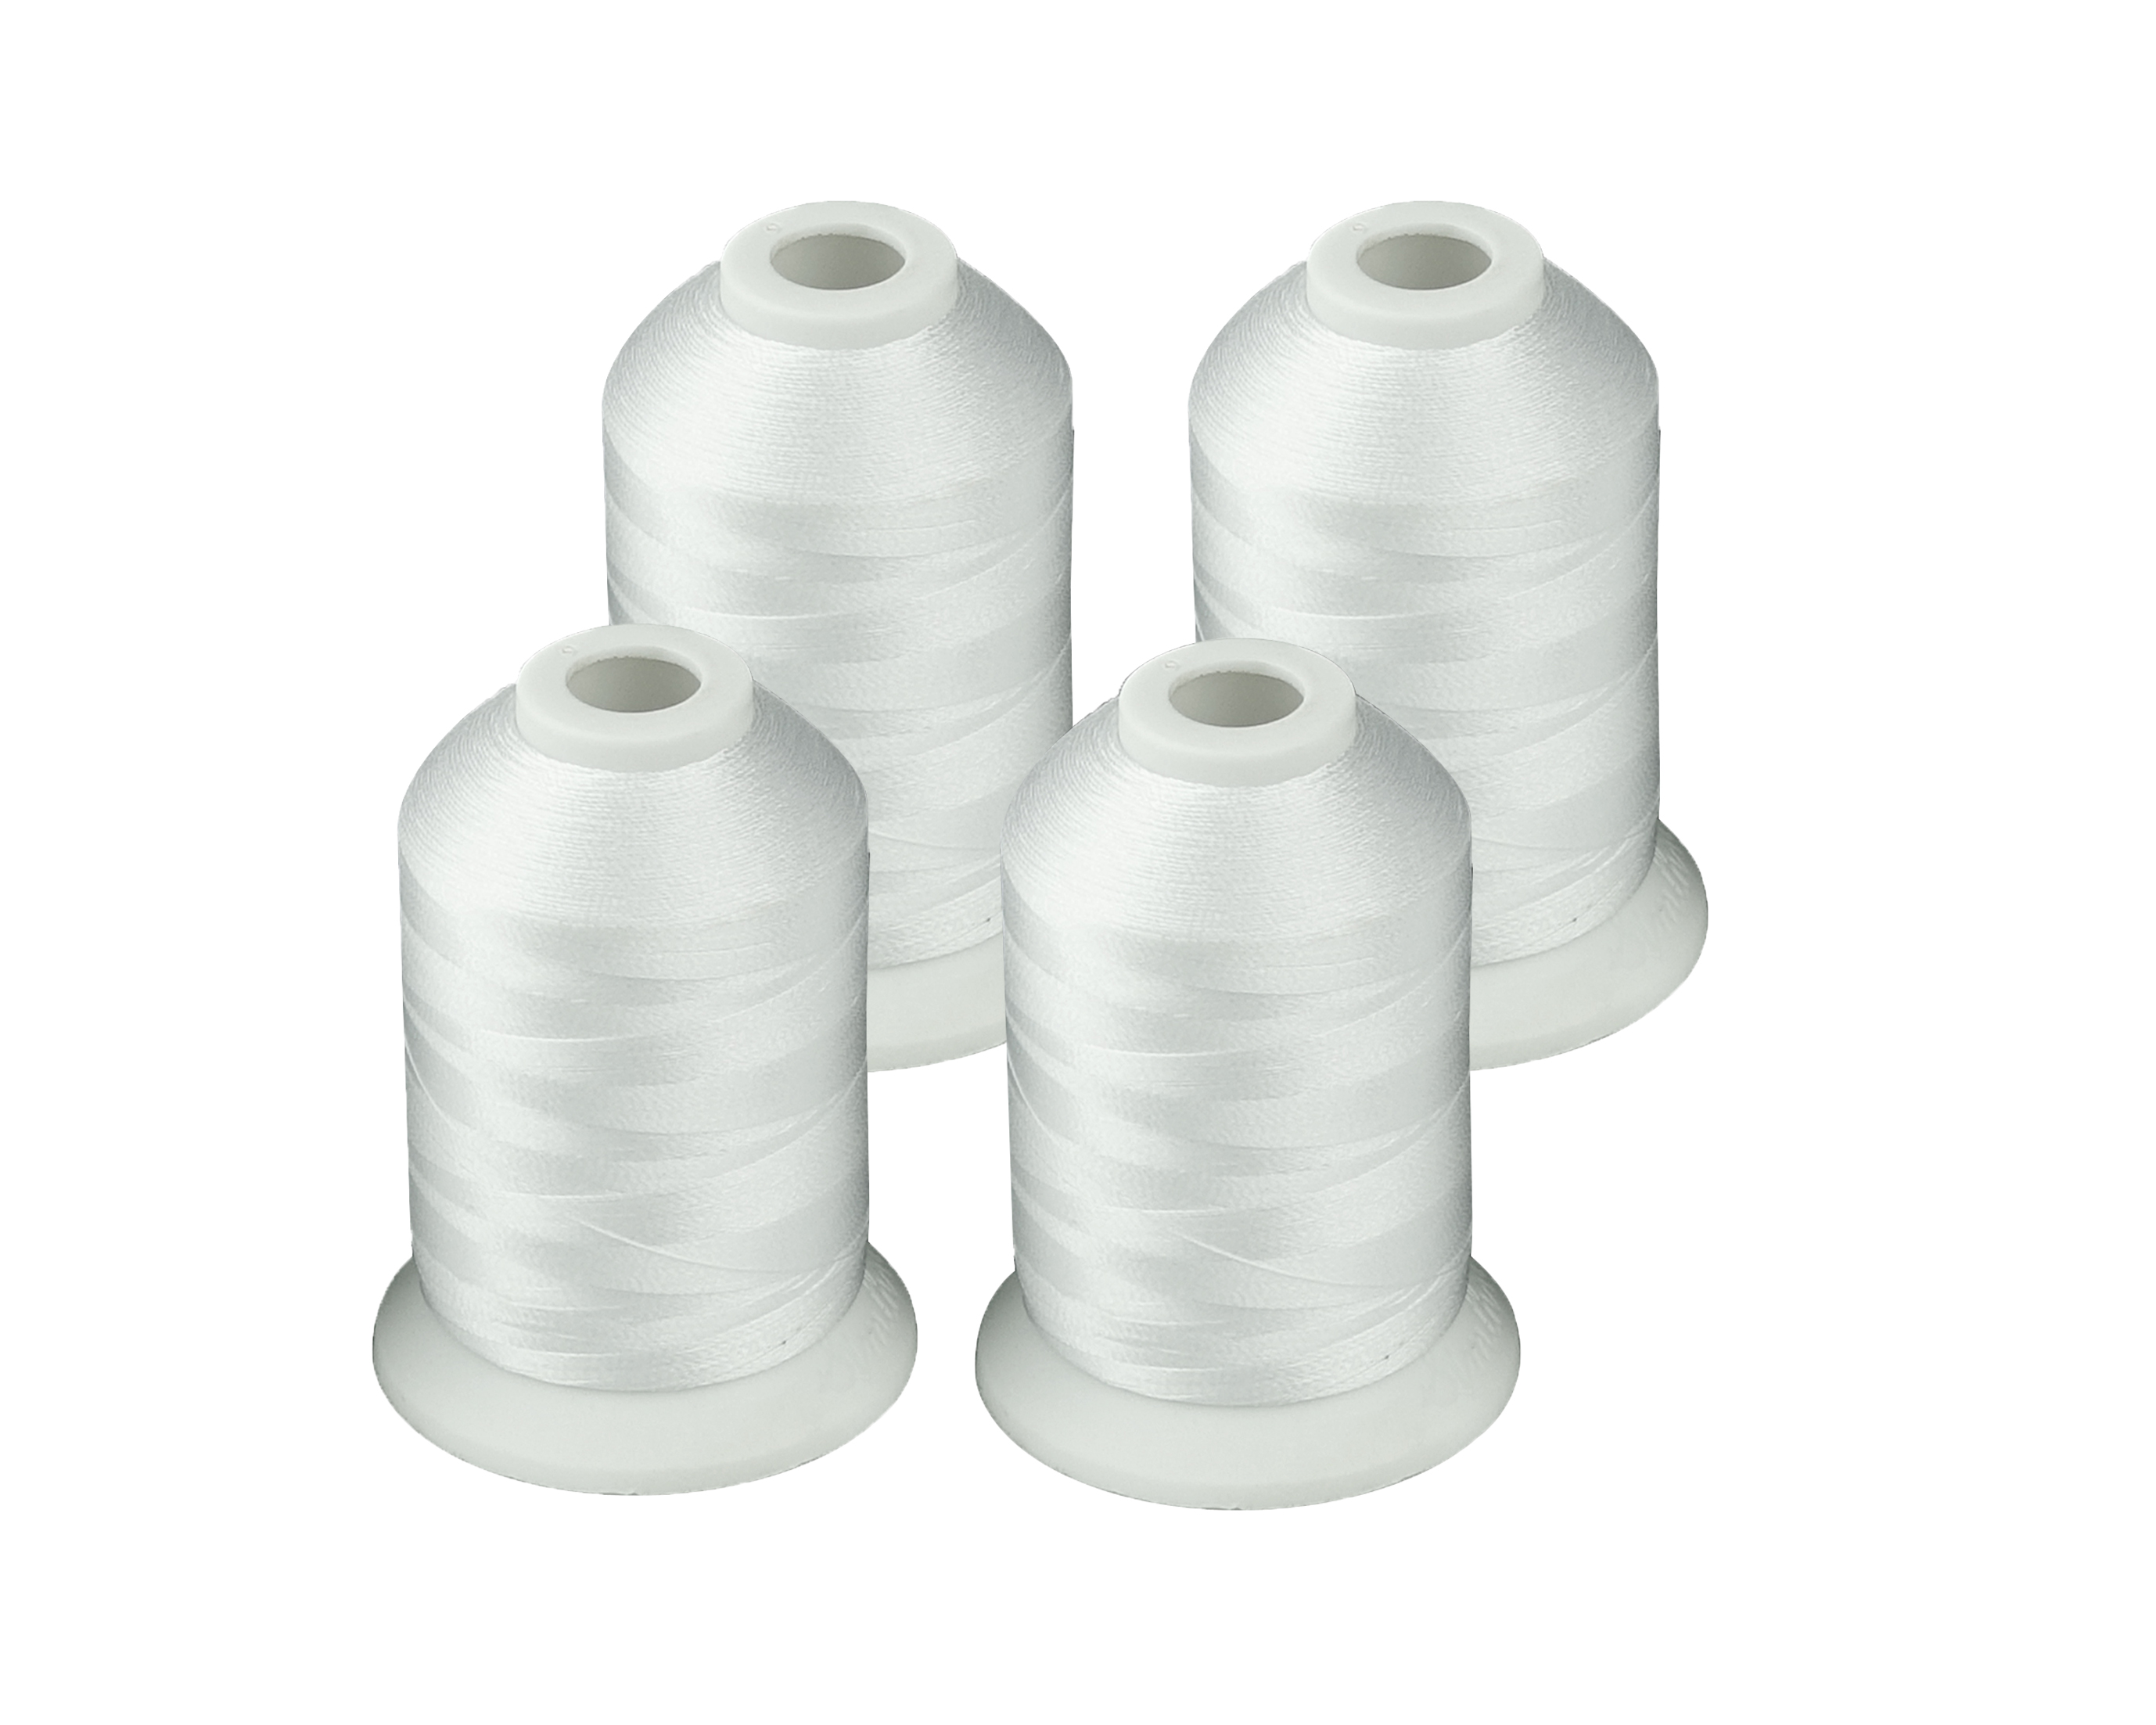 Simthread Black Or White Brother Colors Polyester Embroidery Machine Thread 1000m X 4 Pcs Each